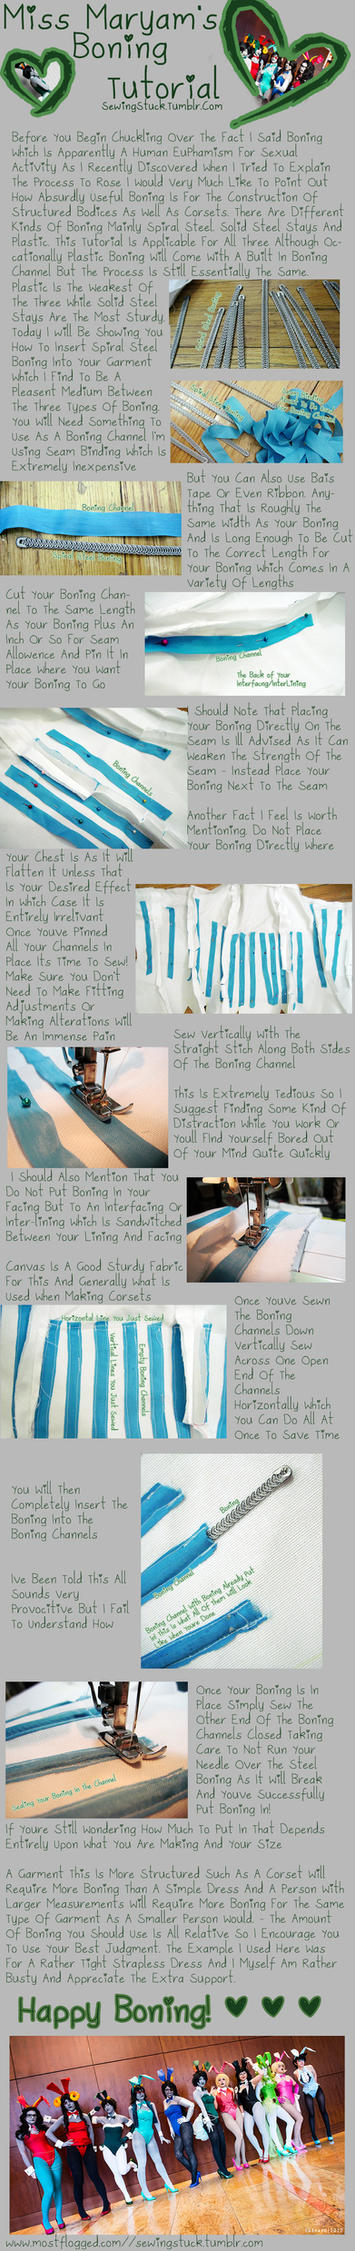 Sewingstuck - Boning Tutorial by Mostflogged